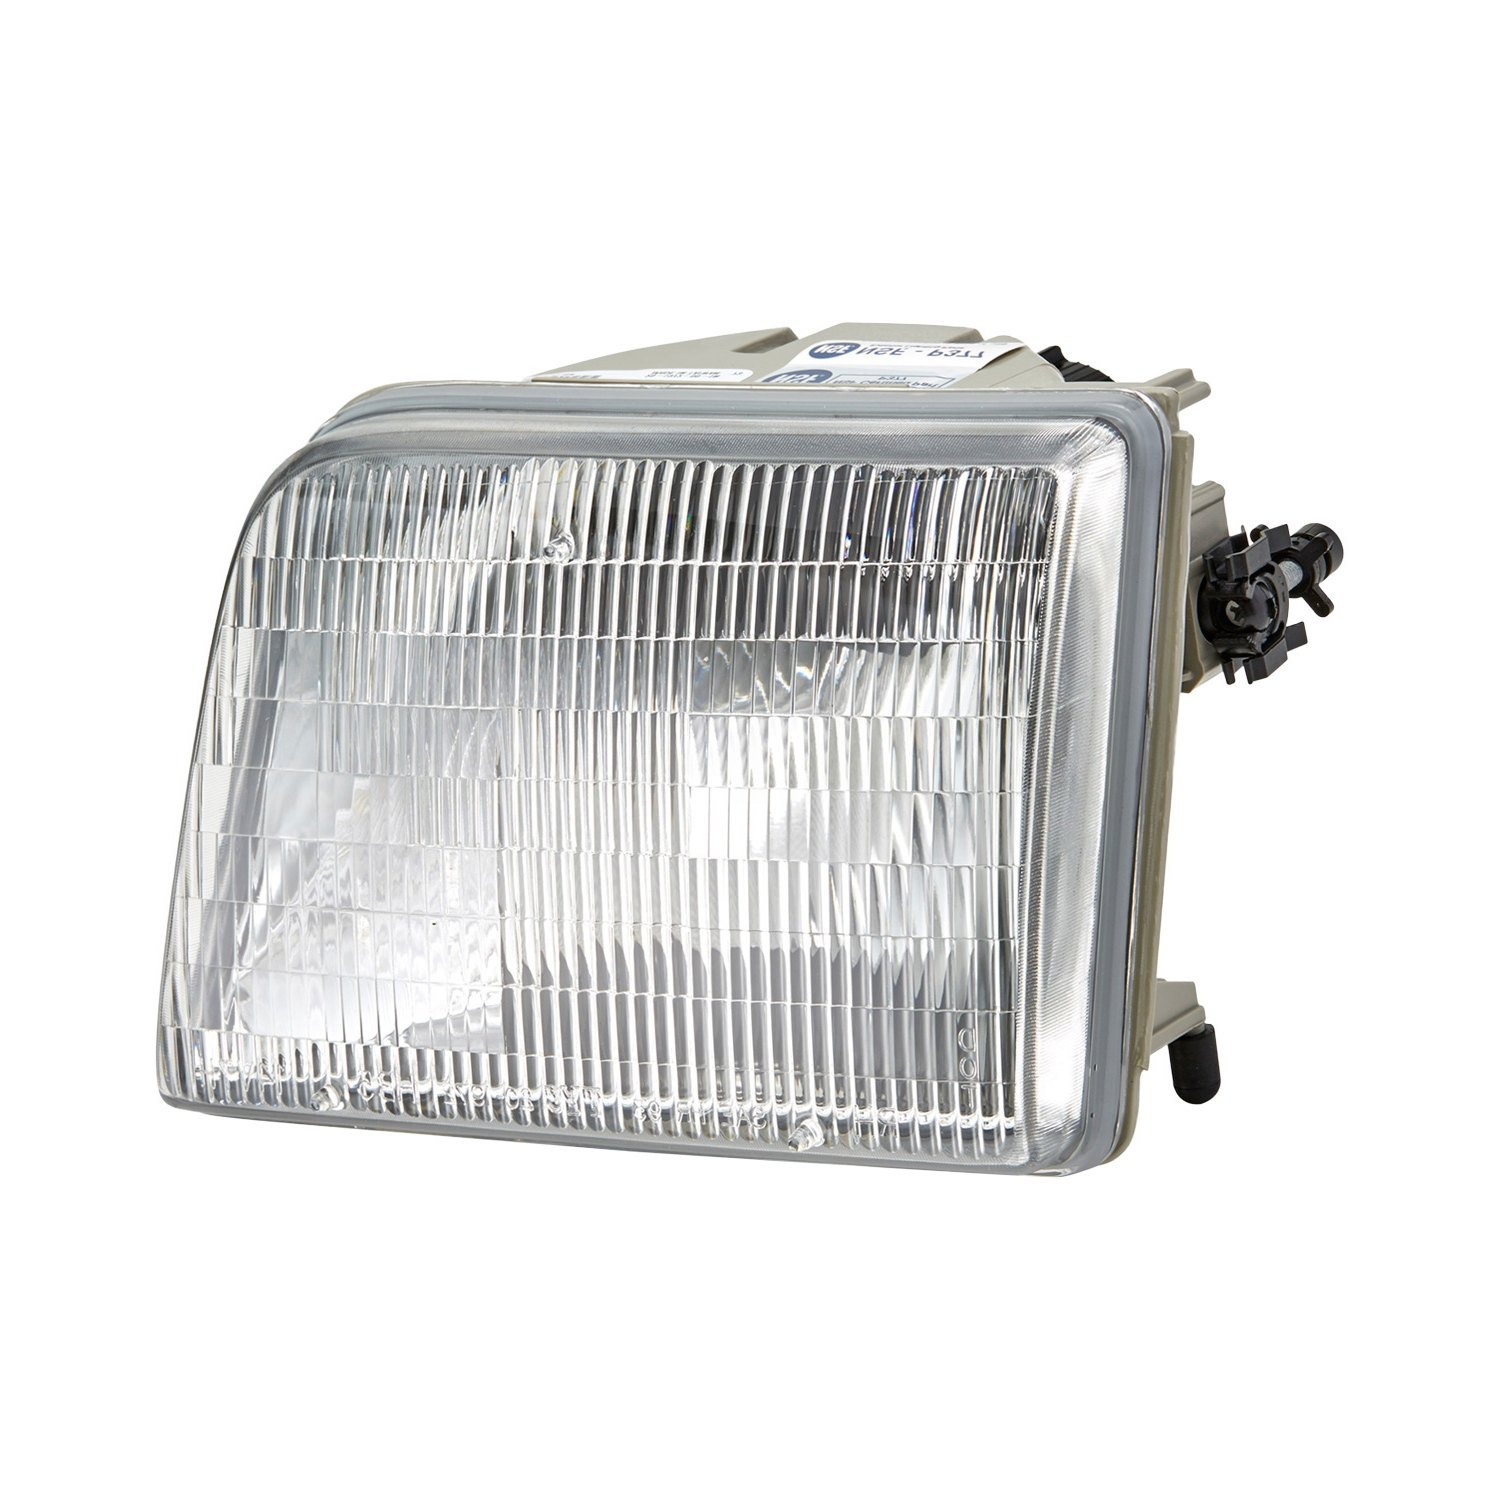 Ford Ranger Headlights : Tyc ford ranger replacement headlight